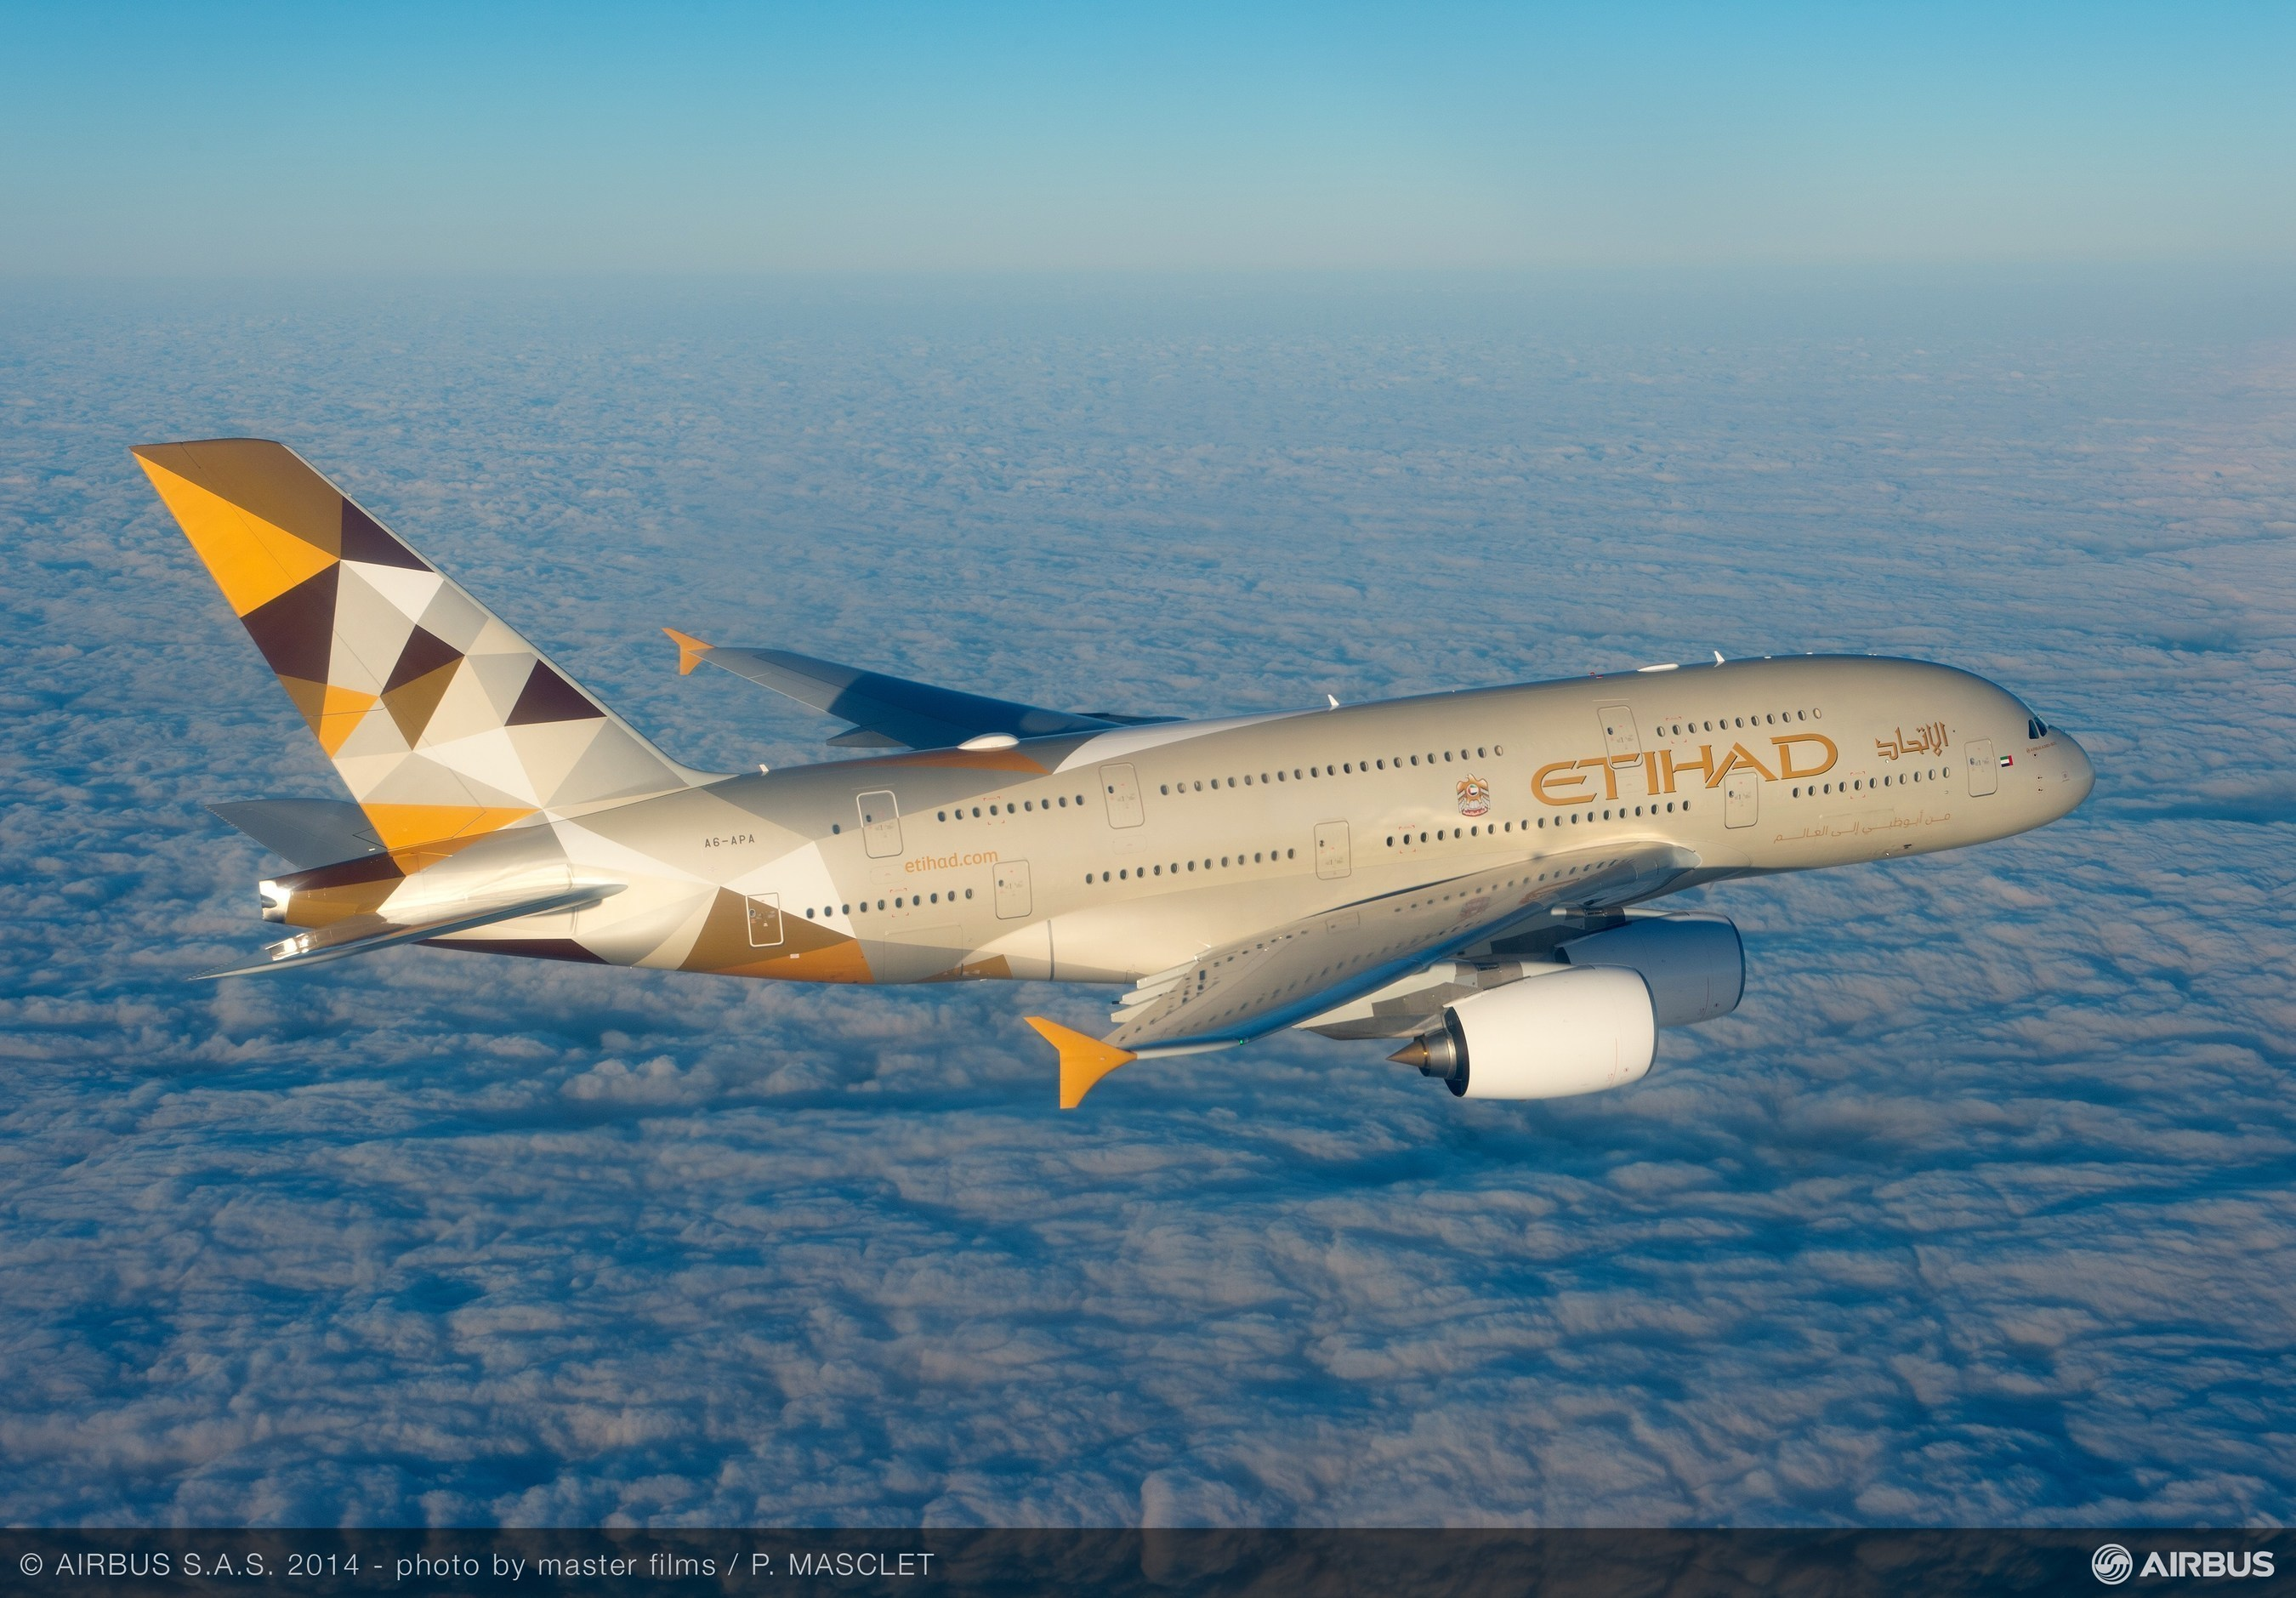 Etihad Airways Announces Additional A380 Service To New York's JFK Airport In Response To Strong Passenger Demand, Beginning June 2017